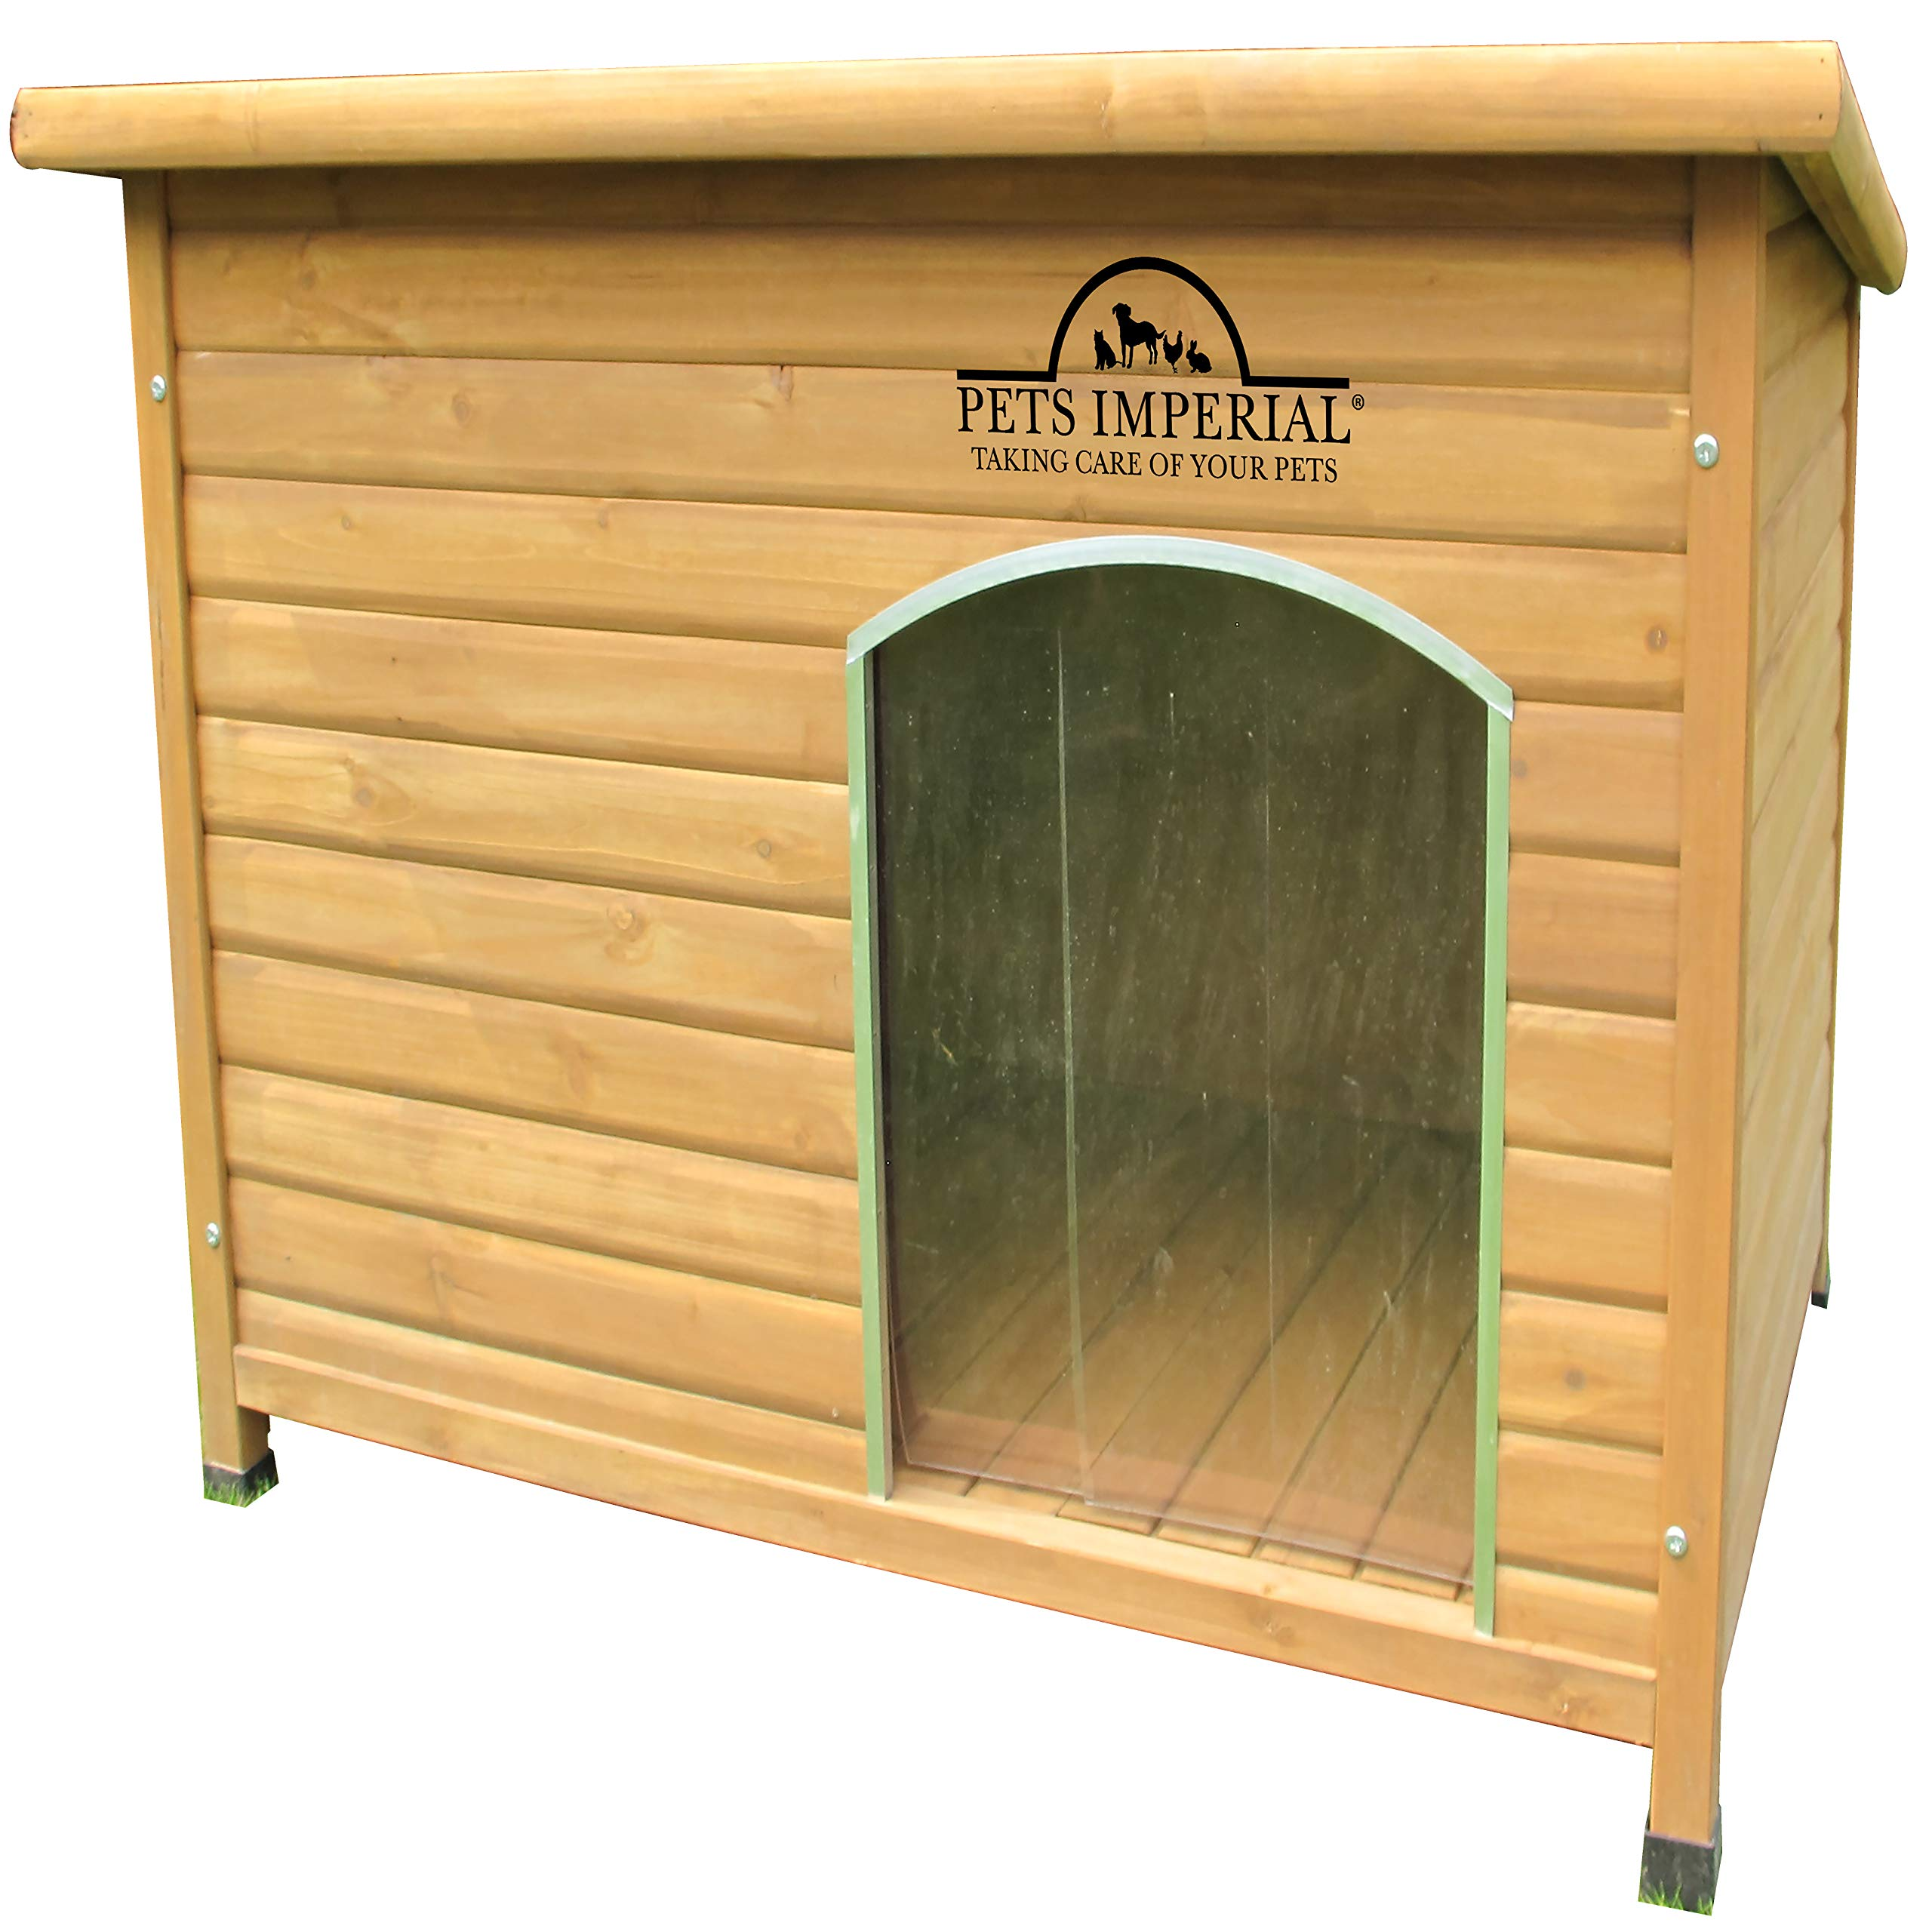 Pets Imperial Extra Large Insulated Wooden Norfolk Dog Kennel With Removable Floor For Easy Cleaning by Pets Imperial